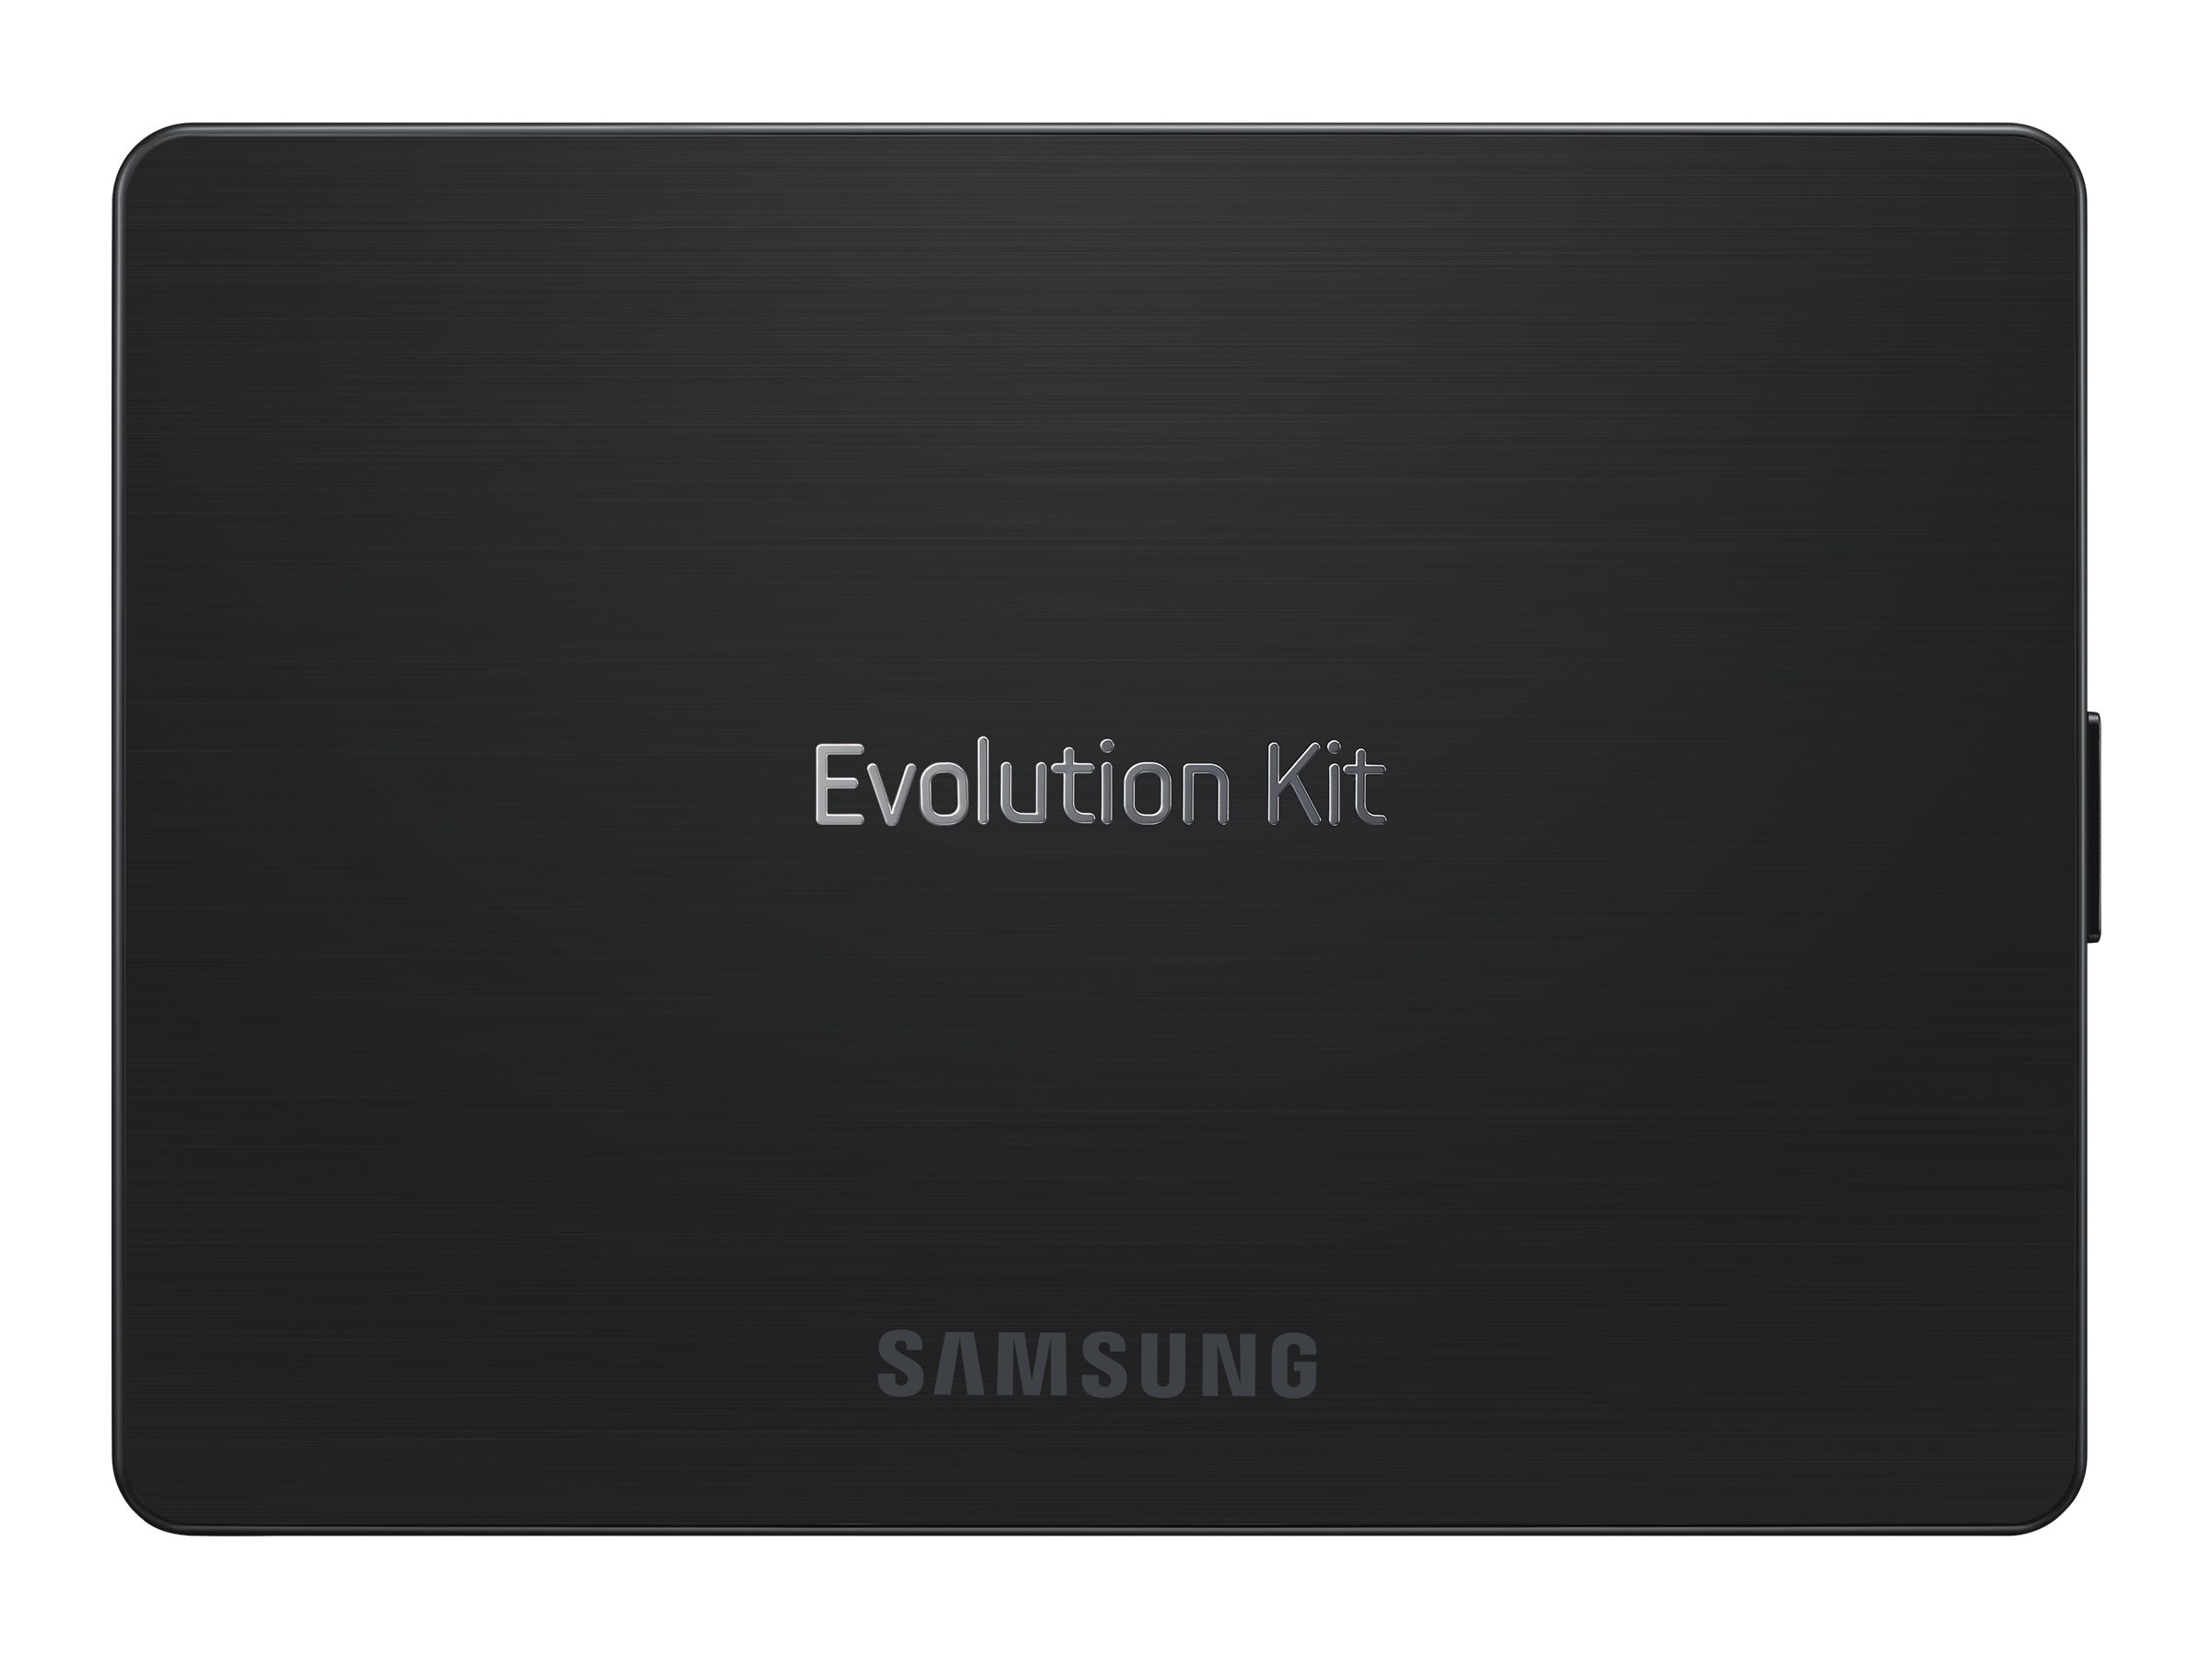 Samsung Smart TV Evolution Kit for LED ES7500, ES8000, ES9000 and PDP E8000 series, SEK-1000/ZA, 16749930, Monitor & Display Accessories